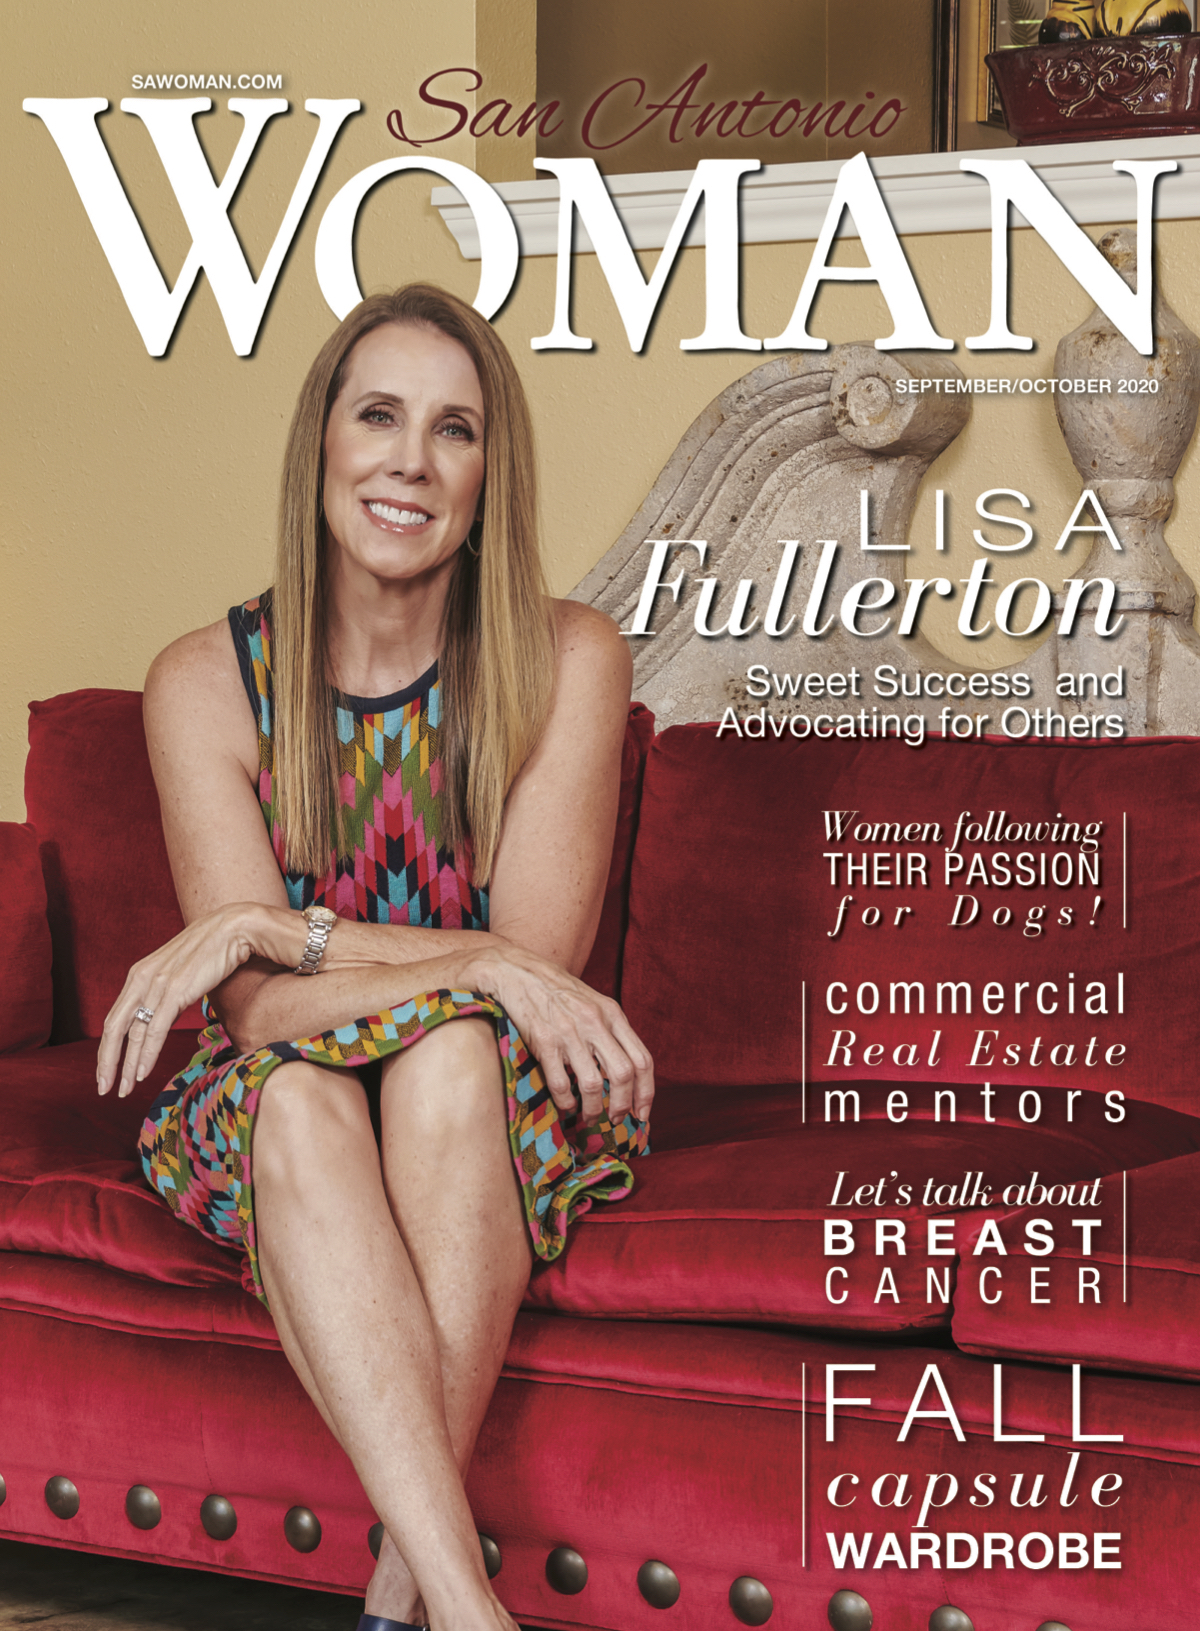 san antonio woman september october fall issue edution